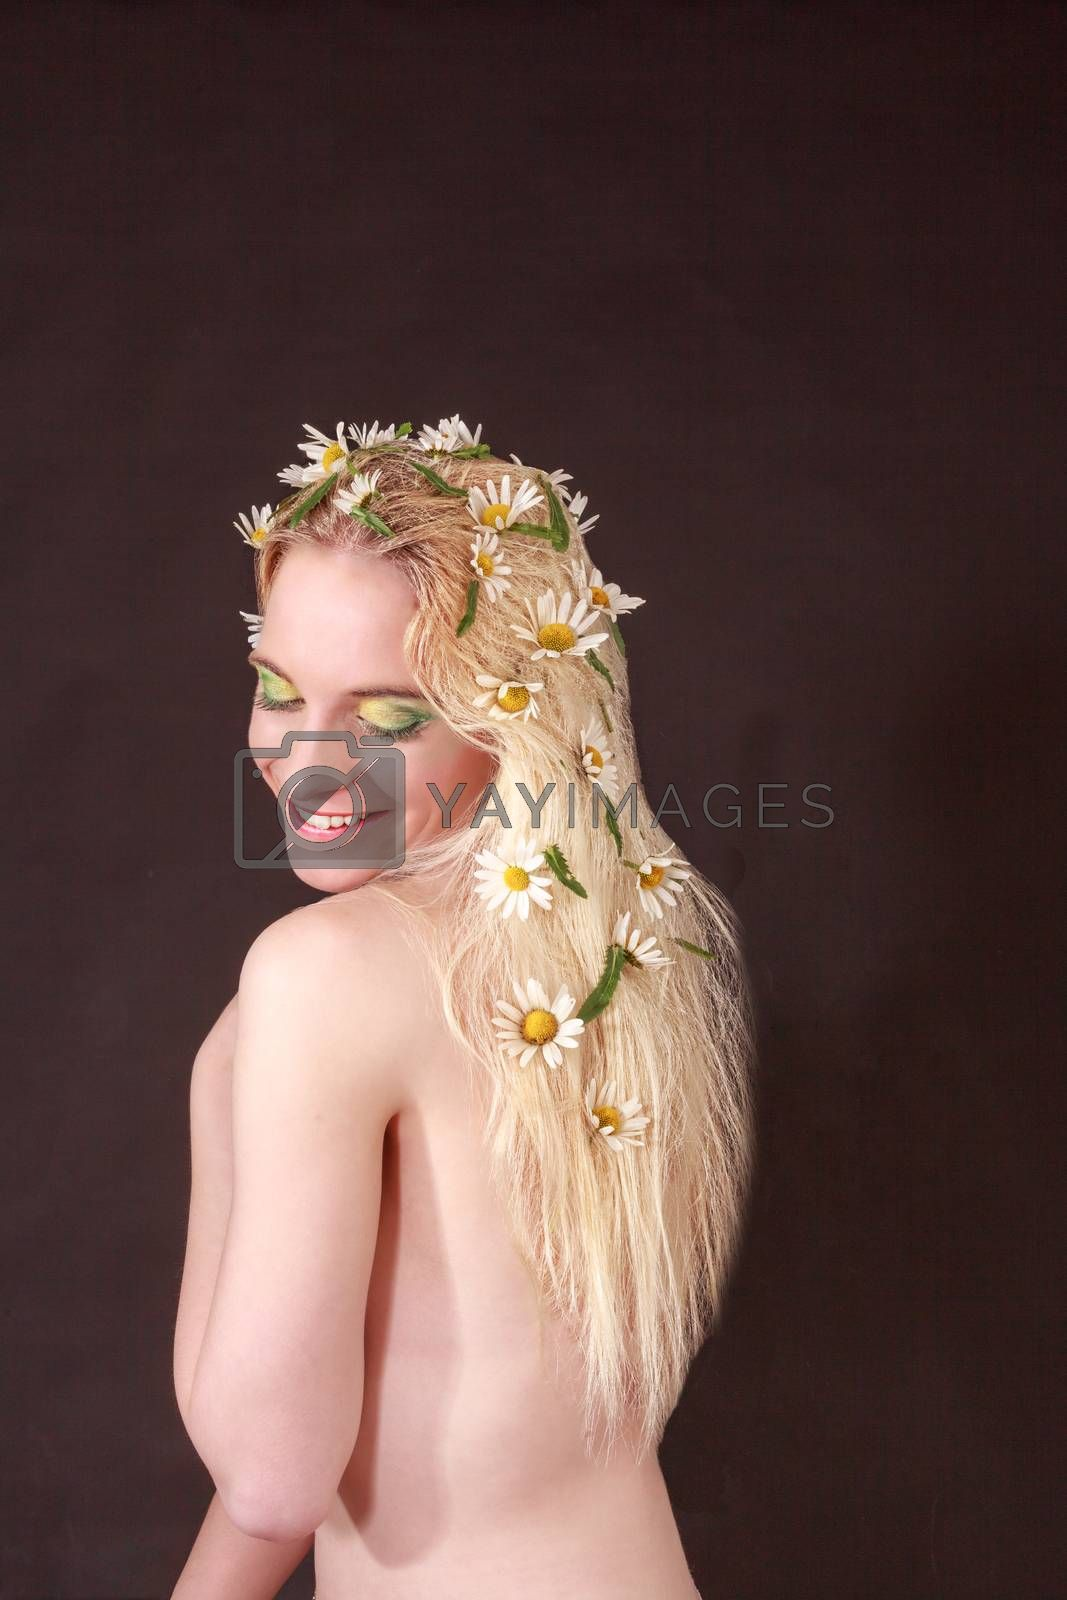 Half Body Shot of a Happy Bare Young Woman with Flowers on her Long Blond Hair, Looking on her Shoulder Against Black Background.